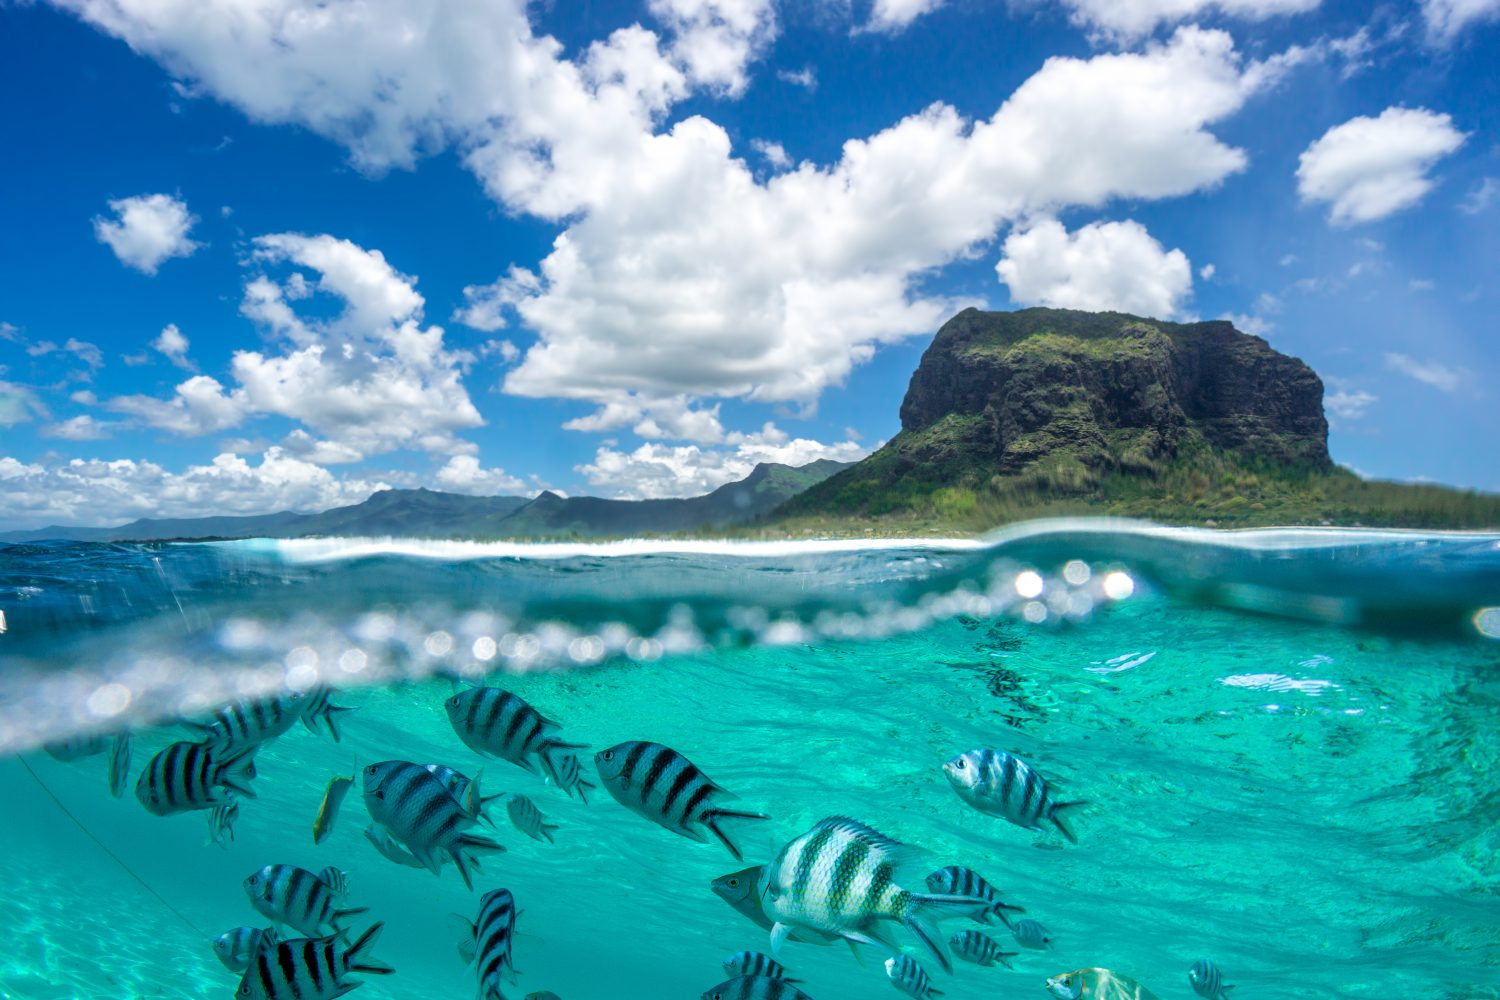 Mauritius: The Tropical Paradise Looking to Become a Blockchain Hub